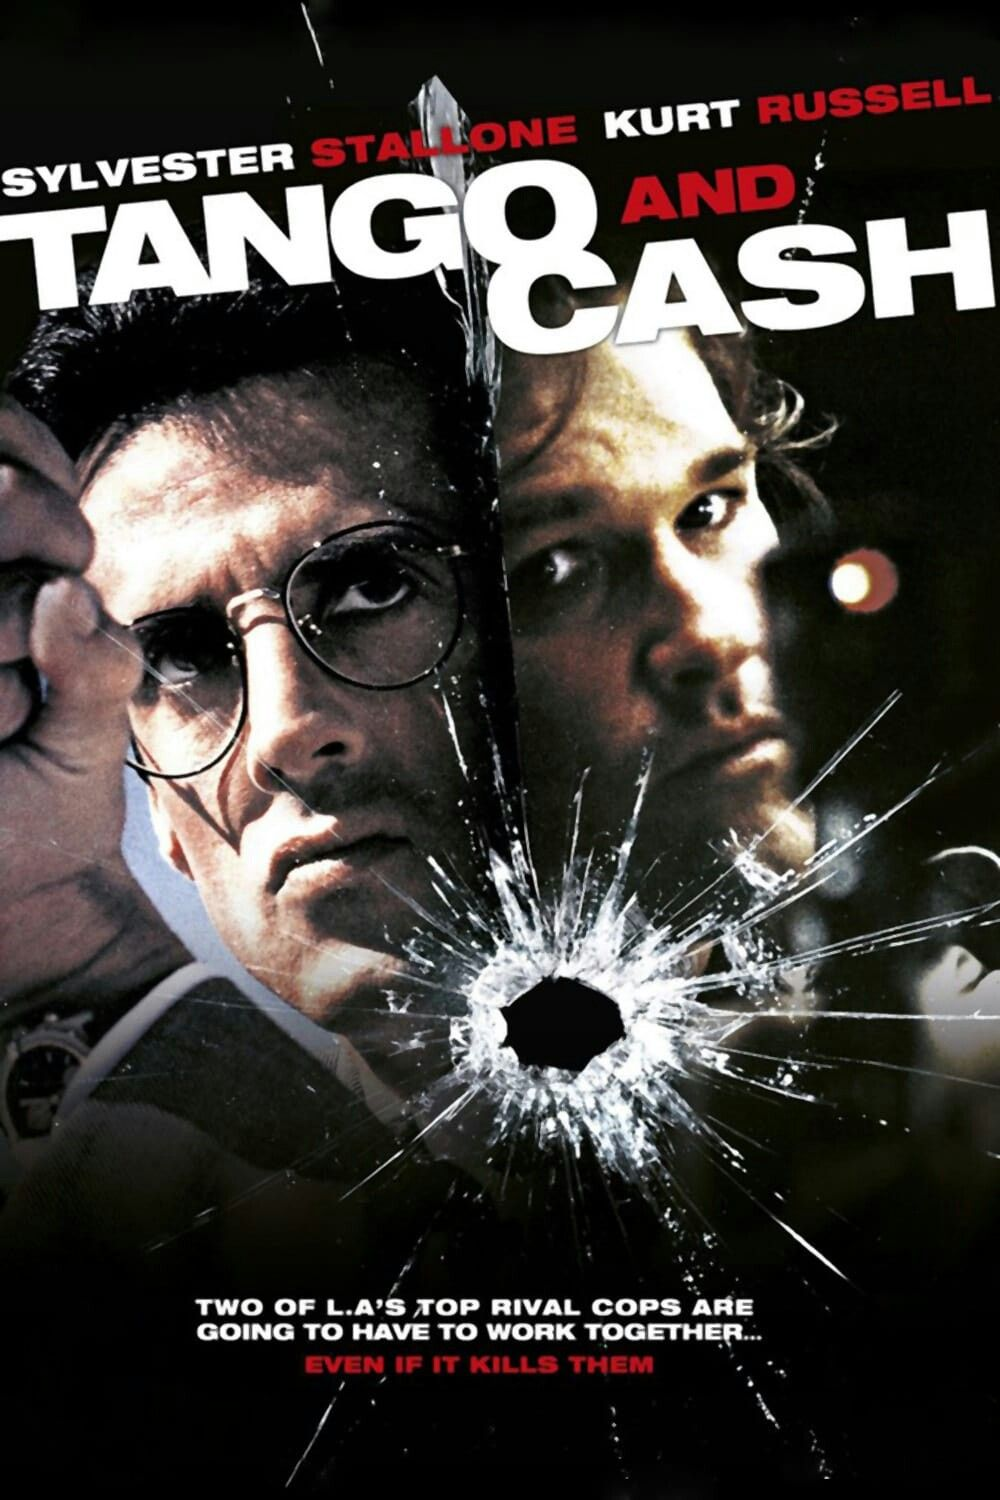 Tango And Cash Movie Poster Fantastic Movie Posters Scifi Movie Posters Horror Movie Posters Action Tango Cash Free Movies Online Full Movies Online Free